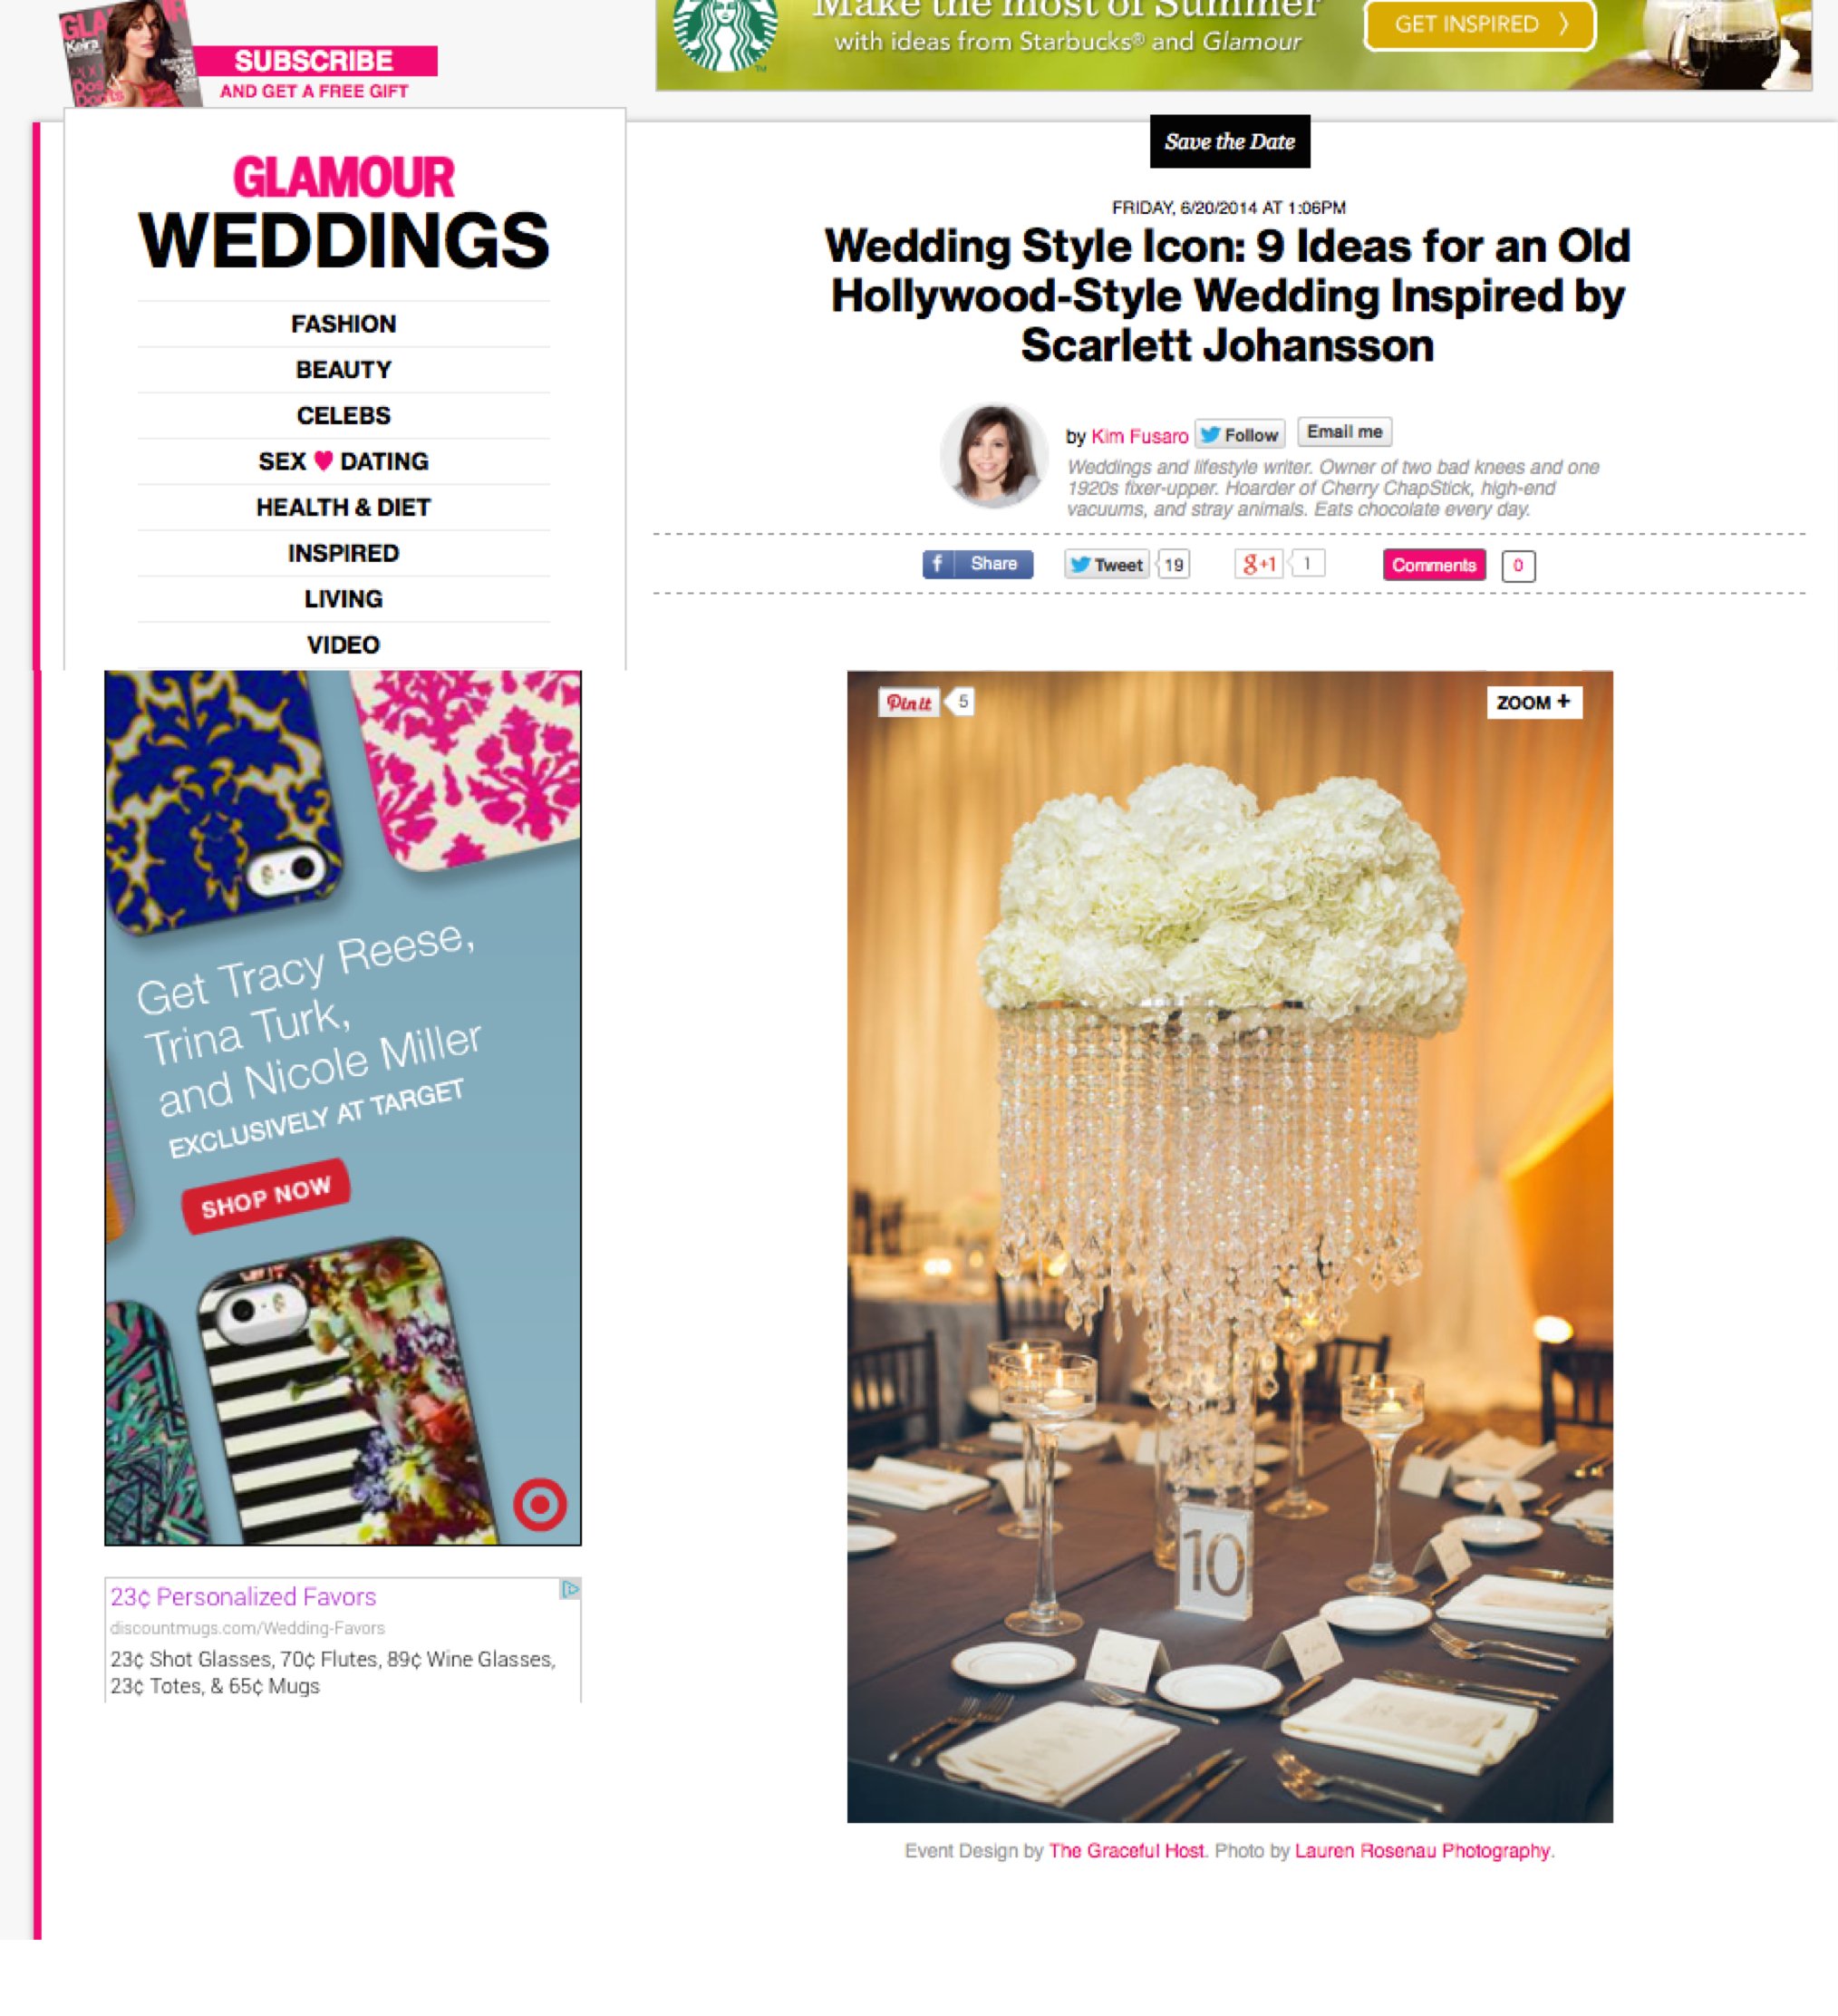 The Graceful Host - Glamour Weddings - Feature